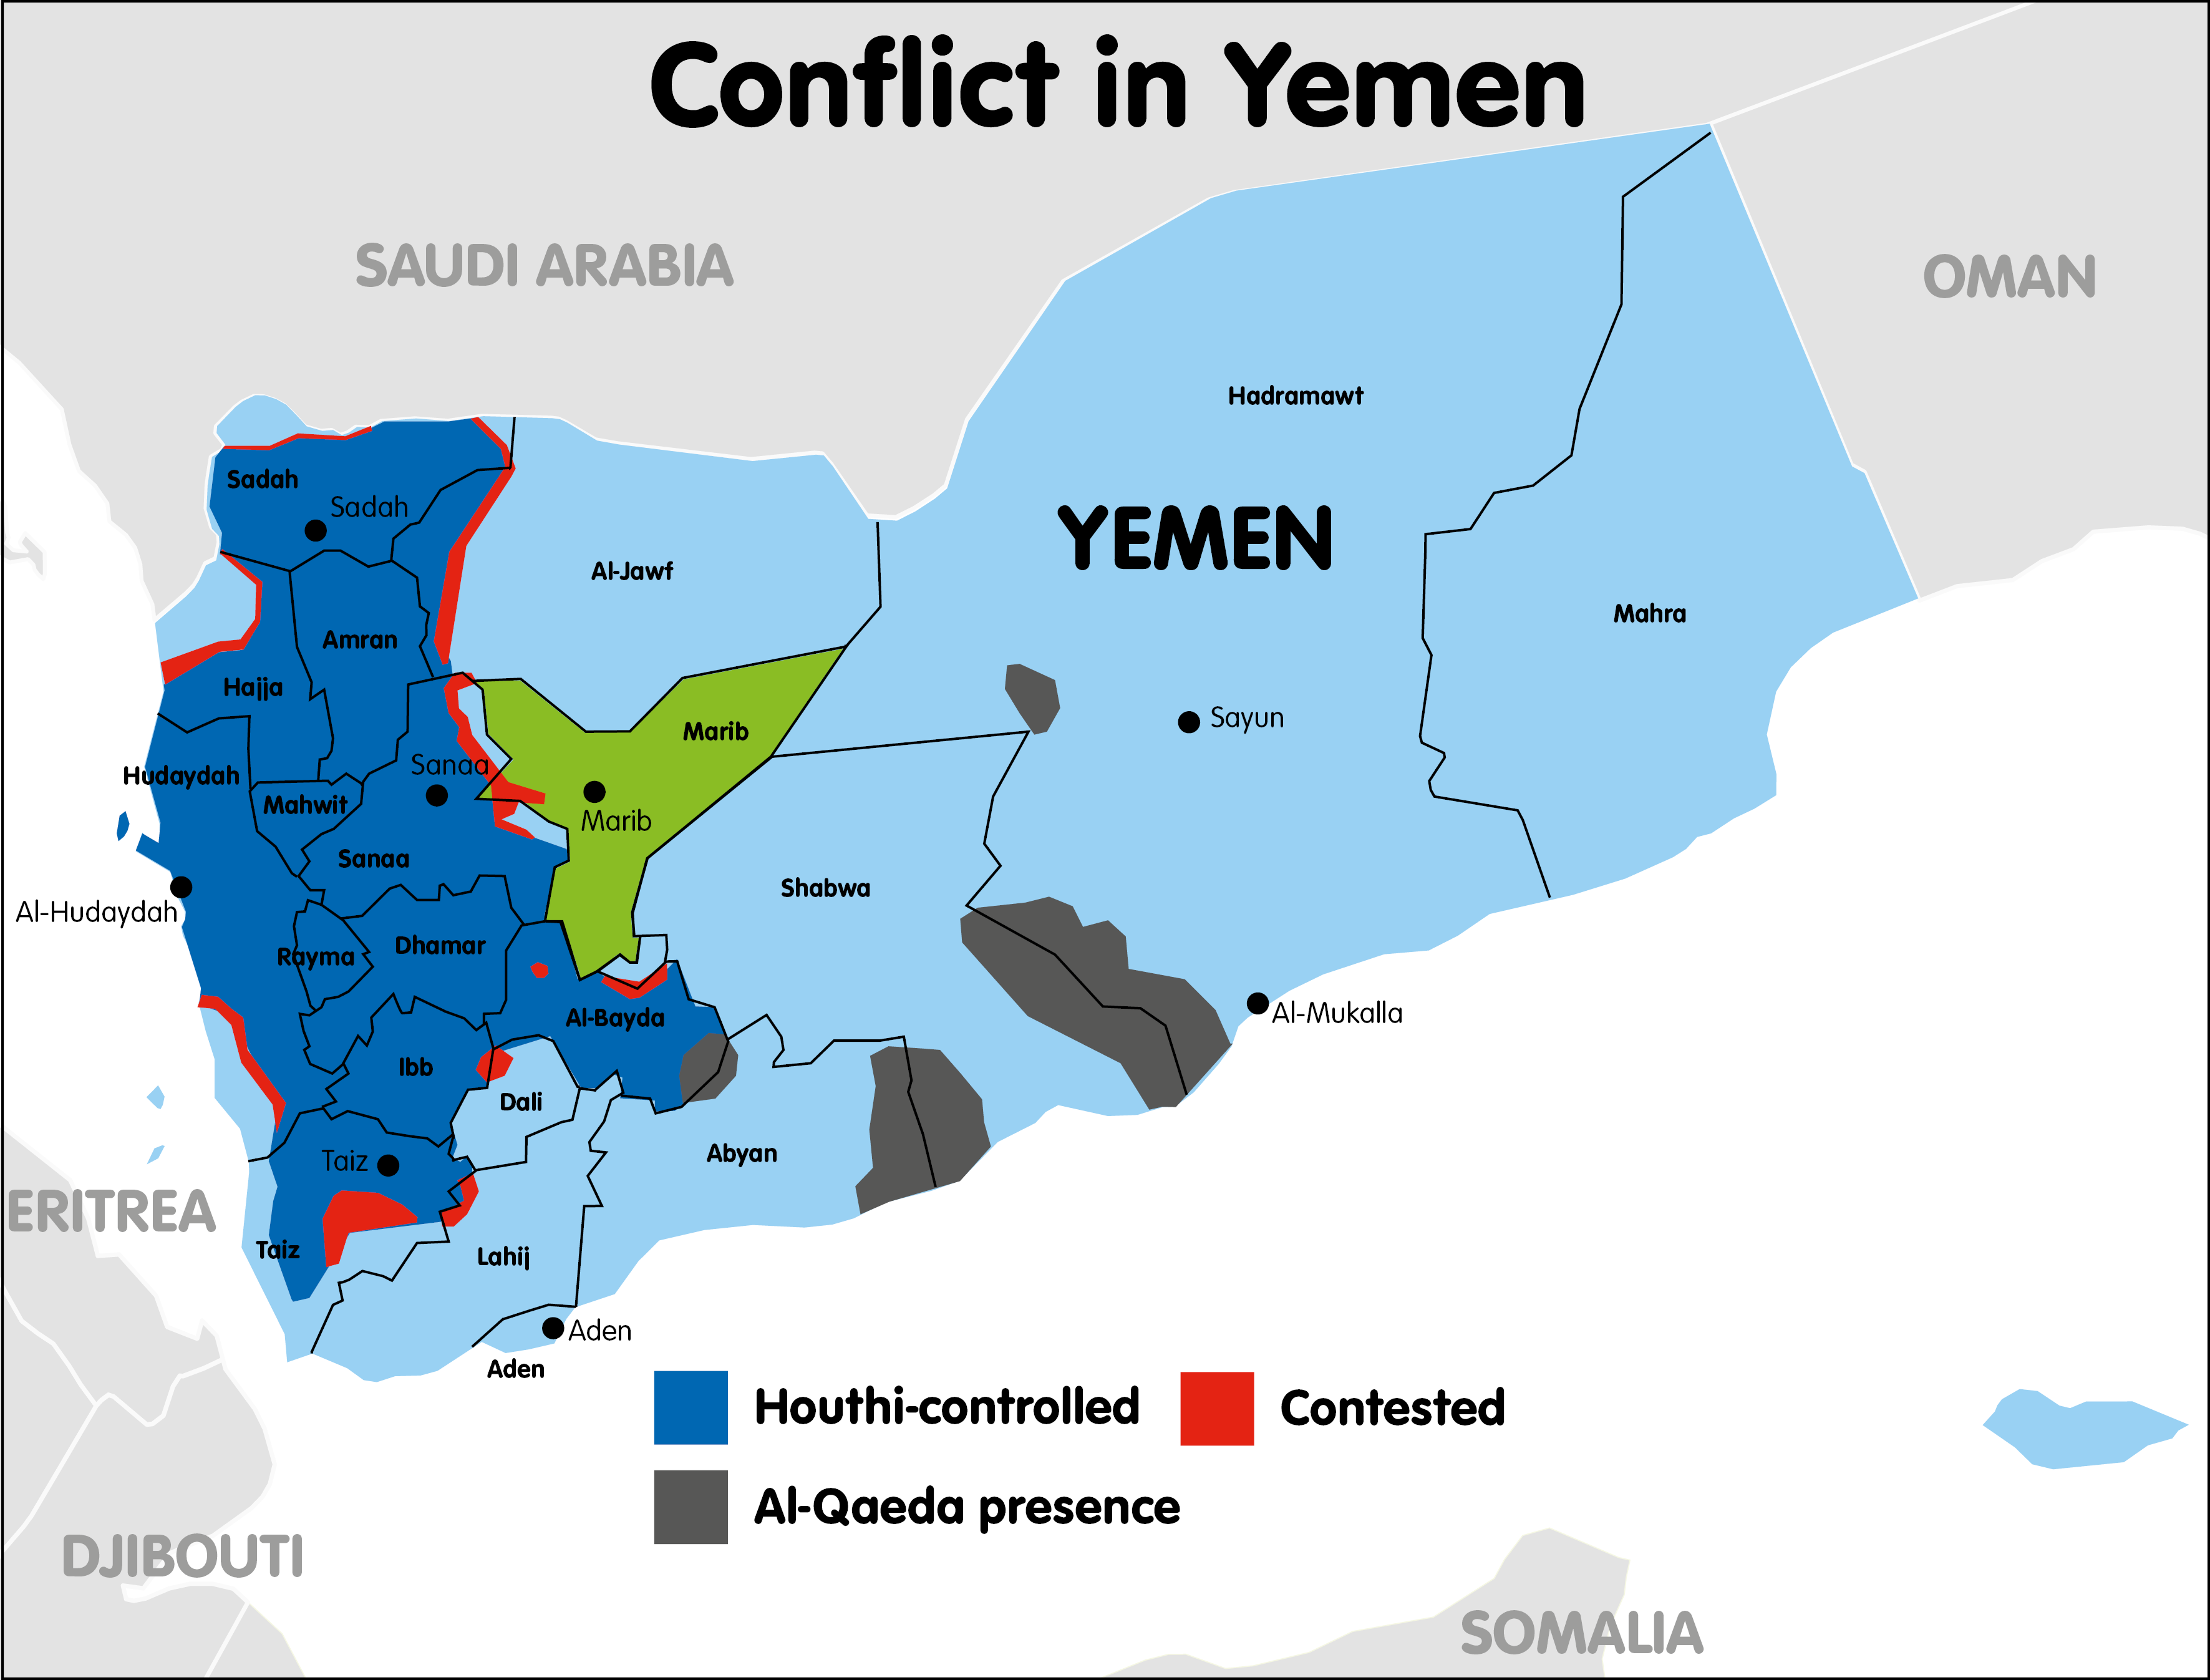 Areas of control in Yemen